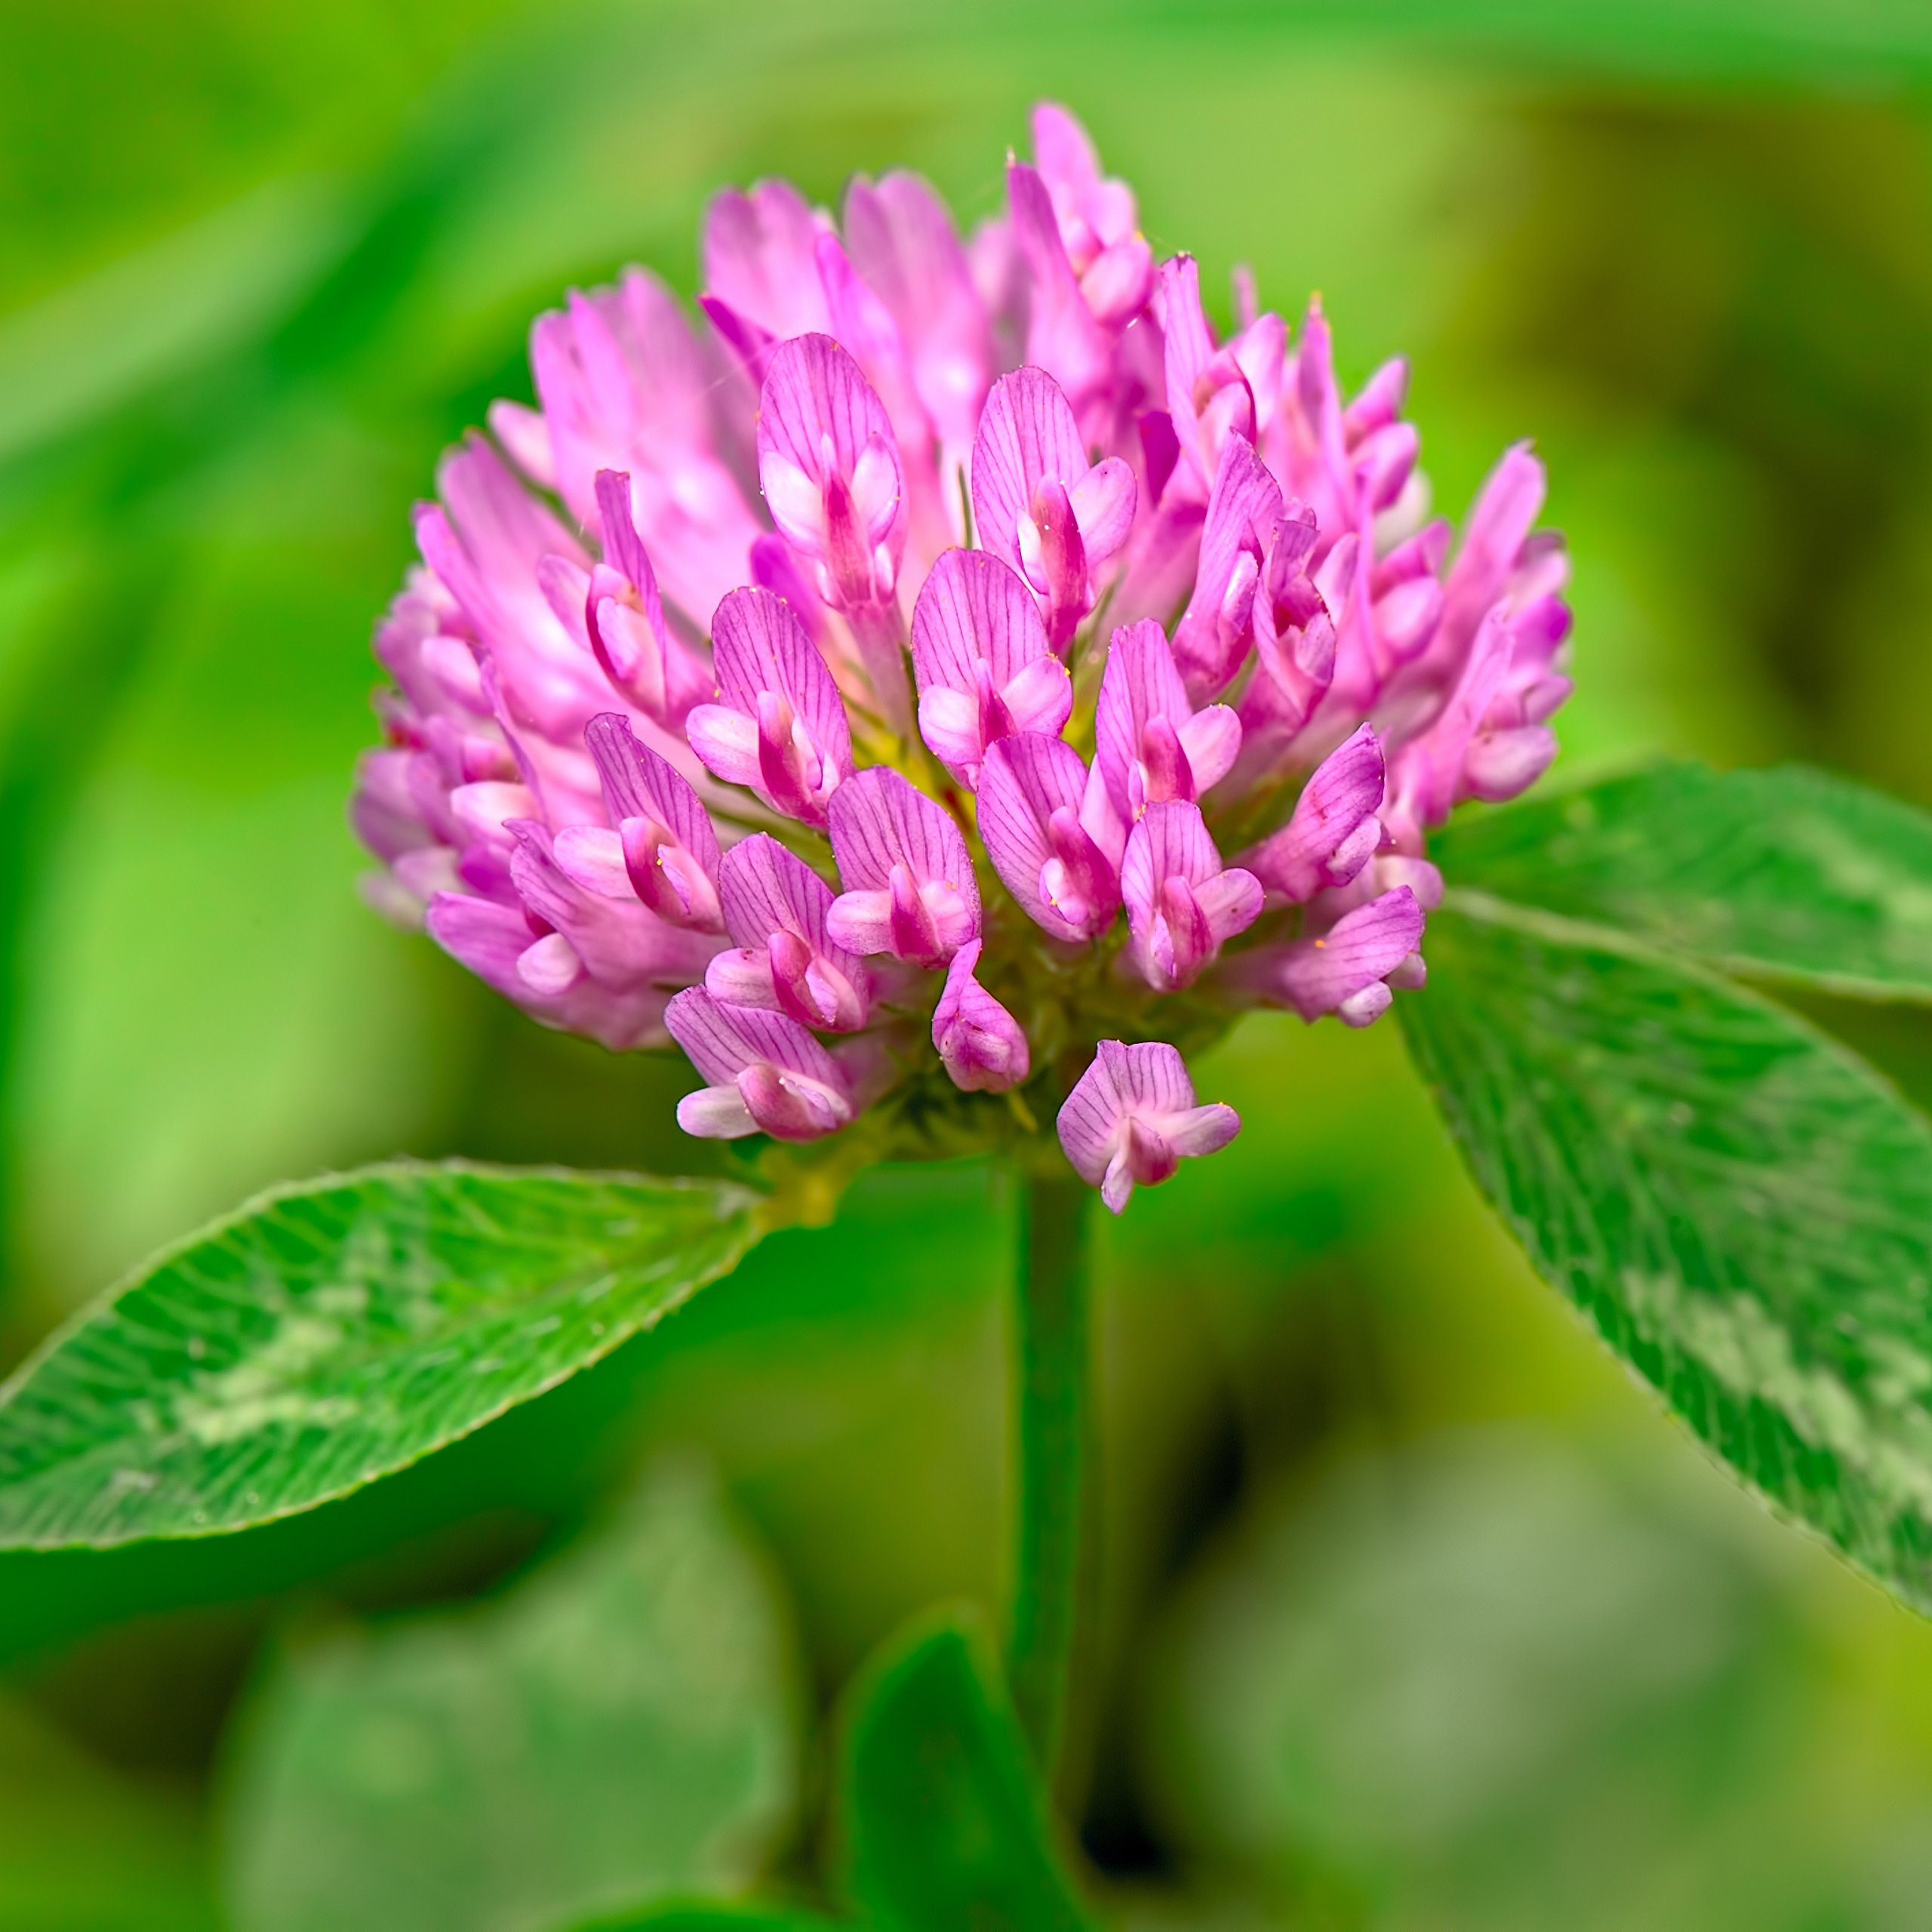 Outsidepride Red Clover Seed: Nitro-Coated, Inoculated - 5 LBS by Outsidepride (Image #3)